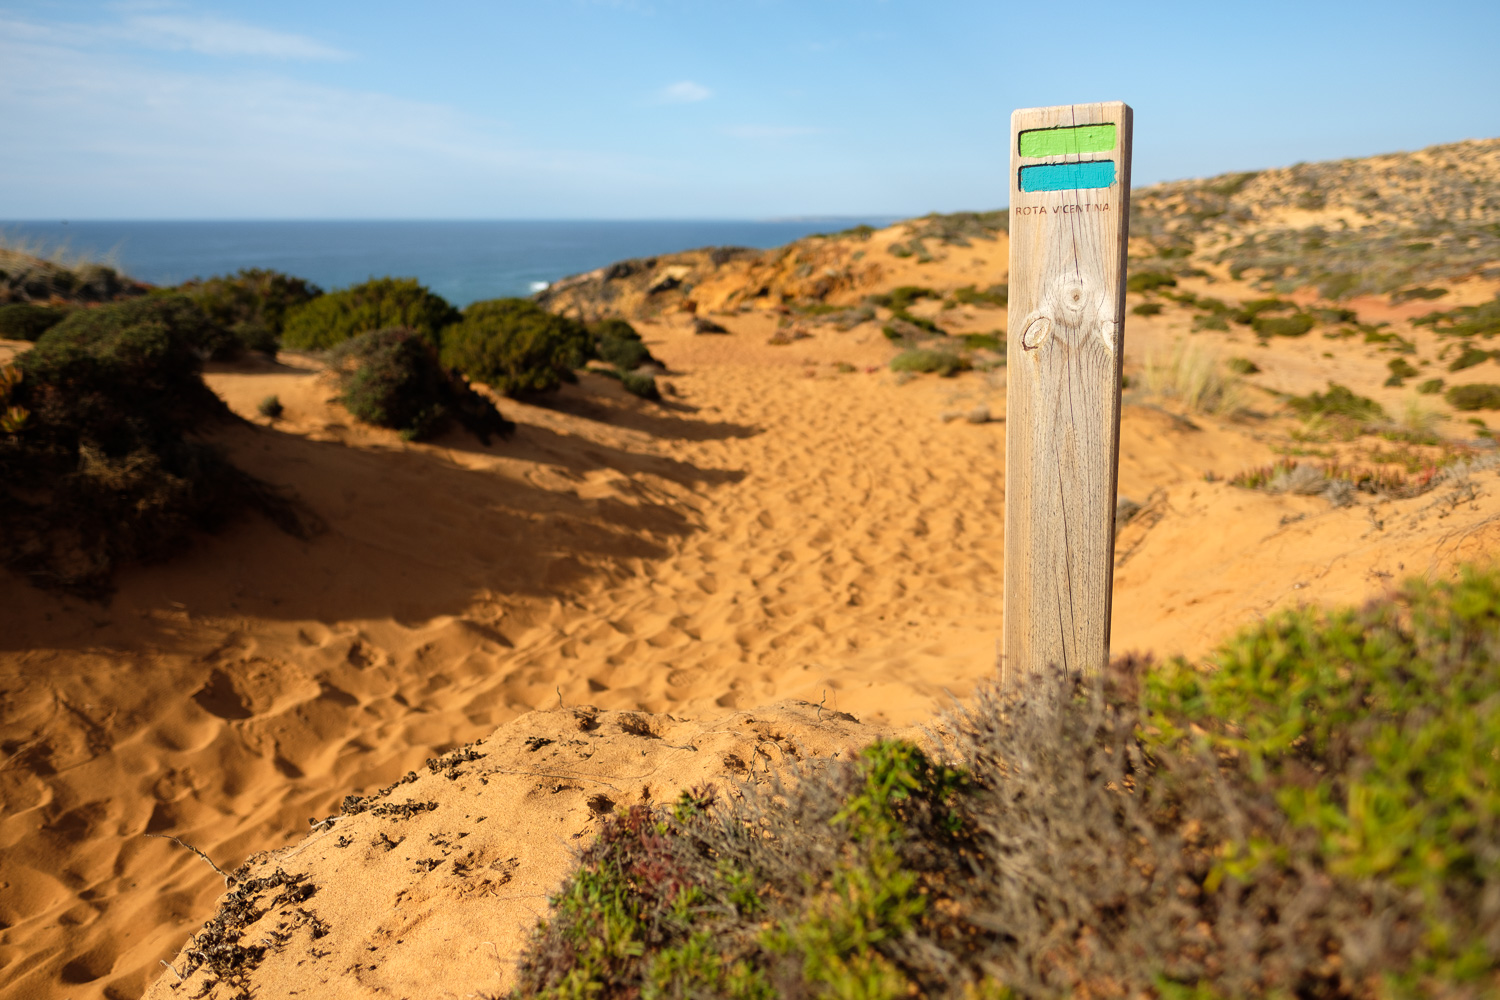 On the Vicentina trail